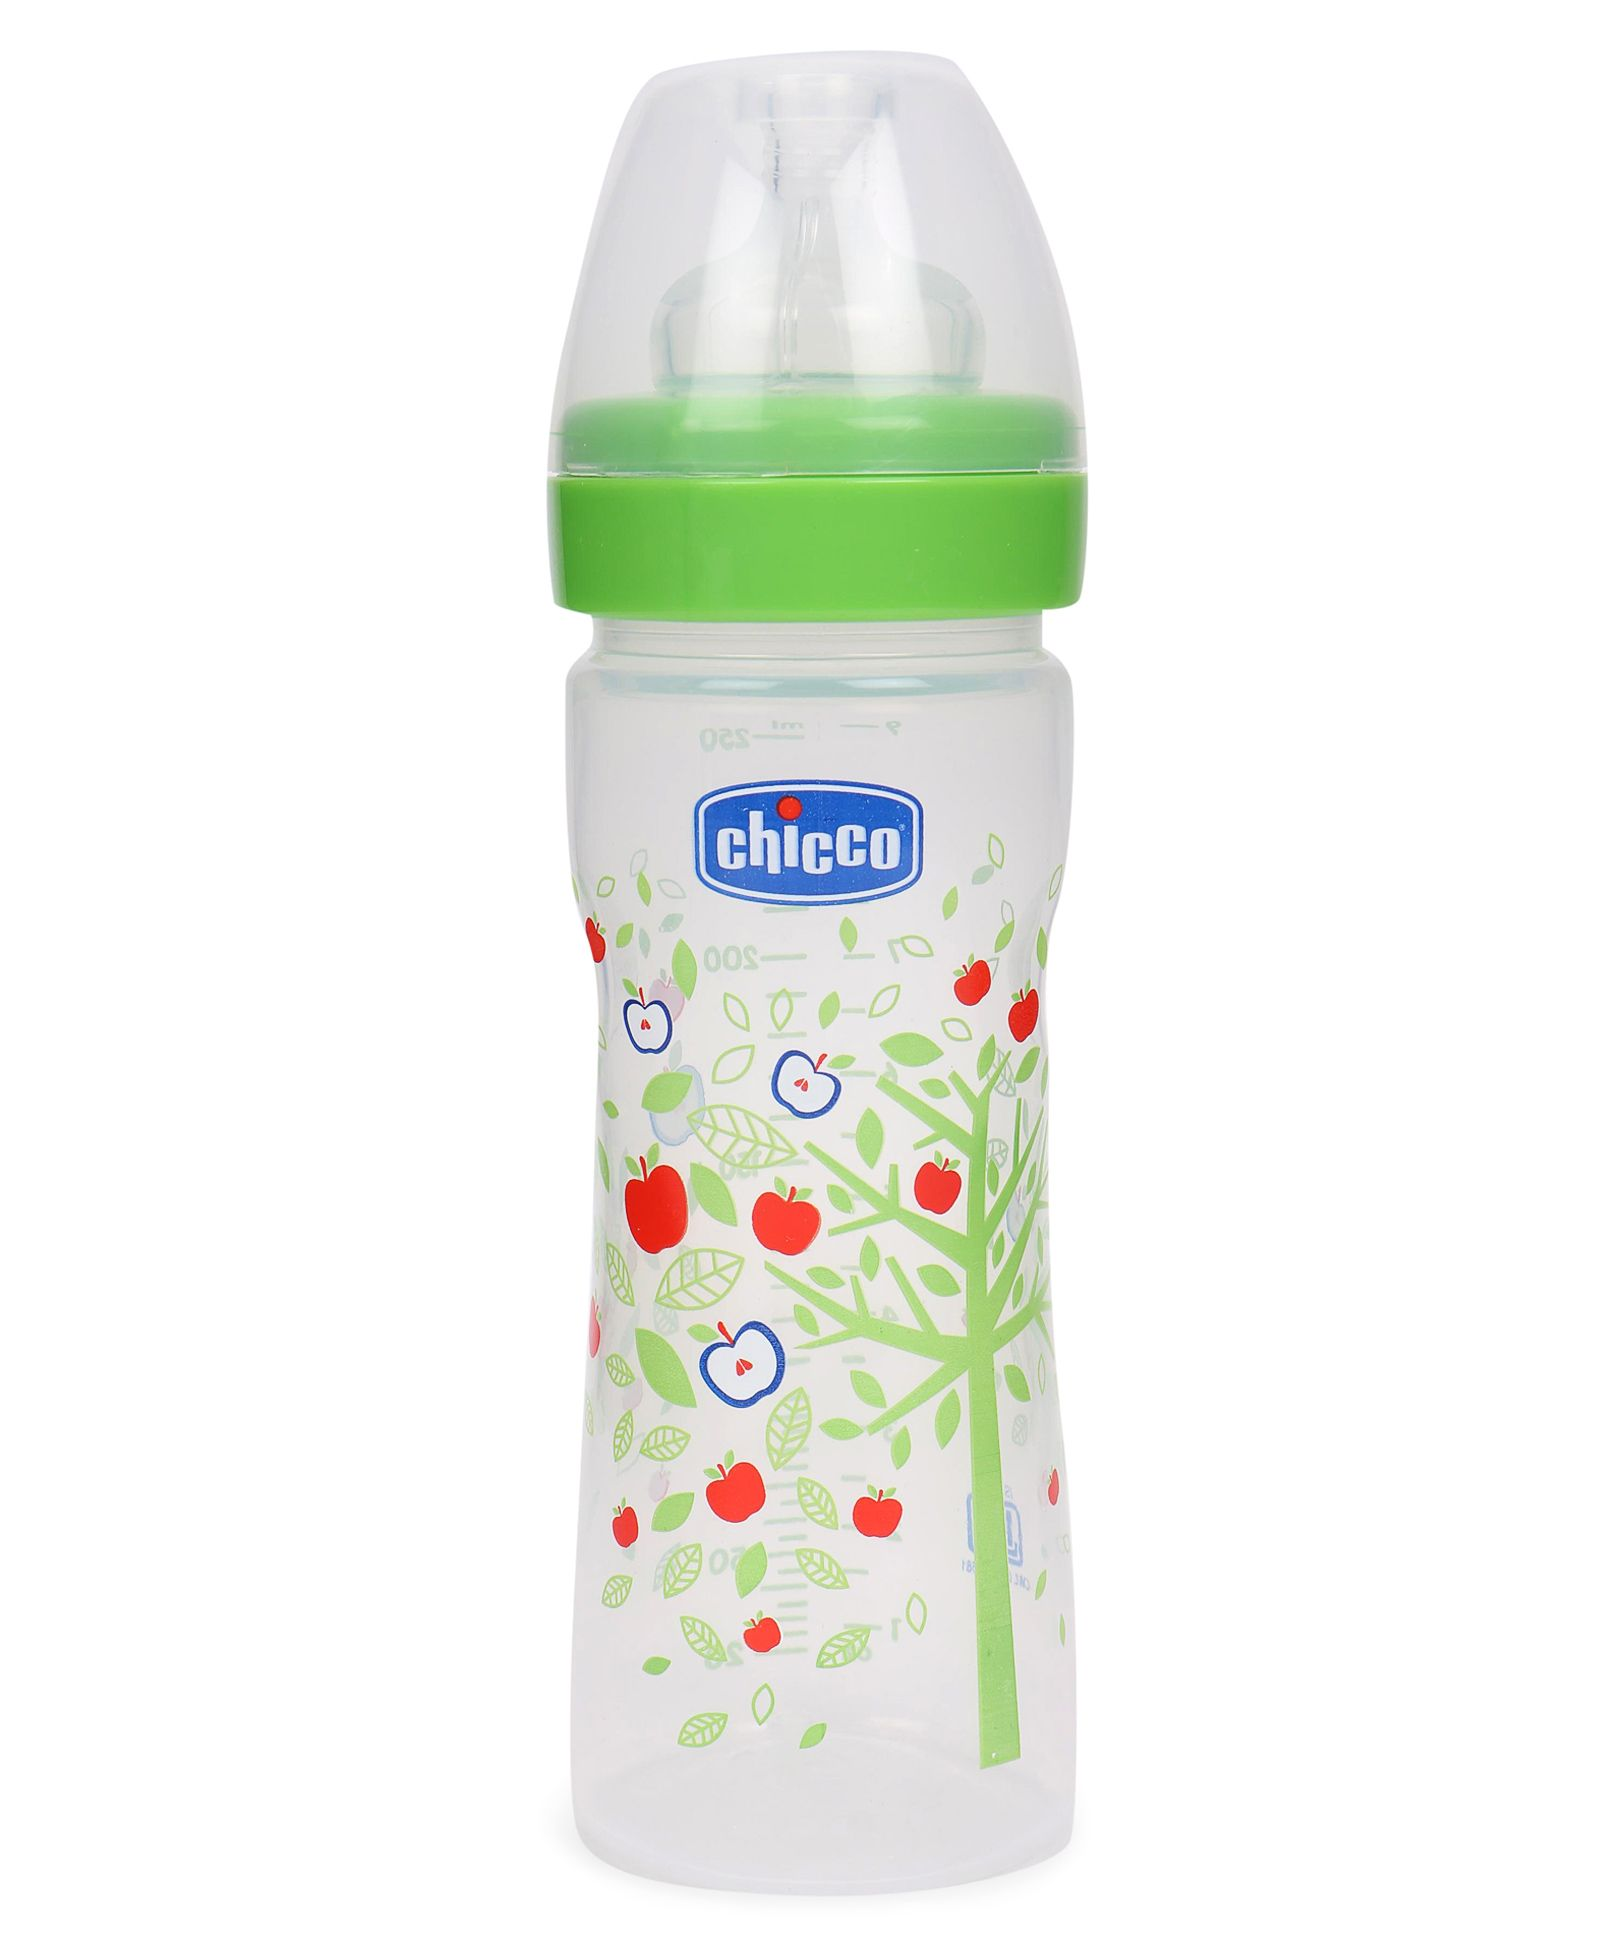 ee192f3e97939 Chicco Wellbeing Feeding Bottle Green 250 ml Online in India, Buy at ...